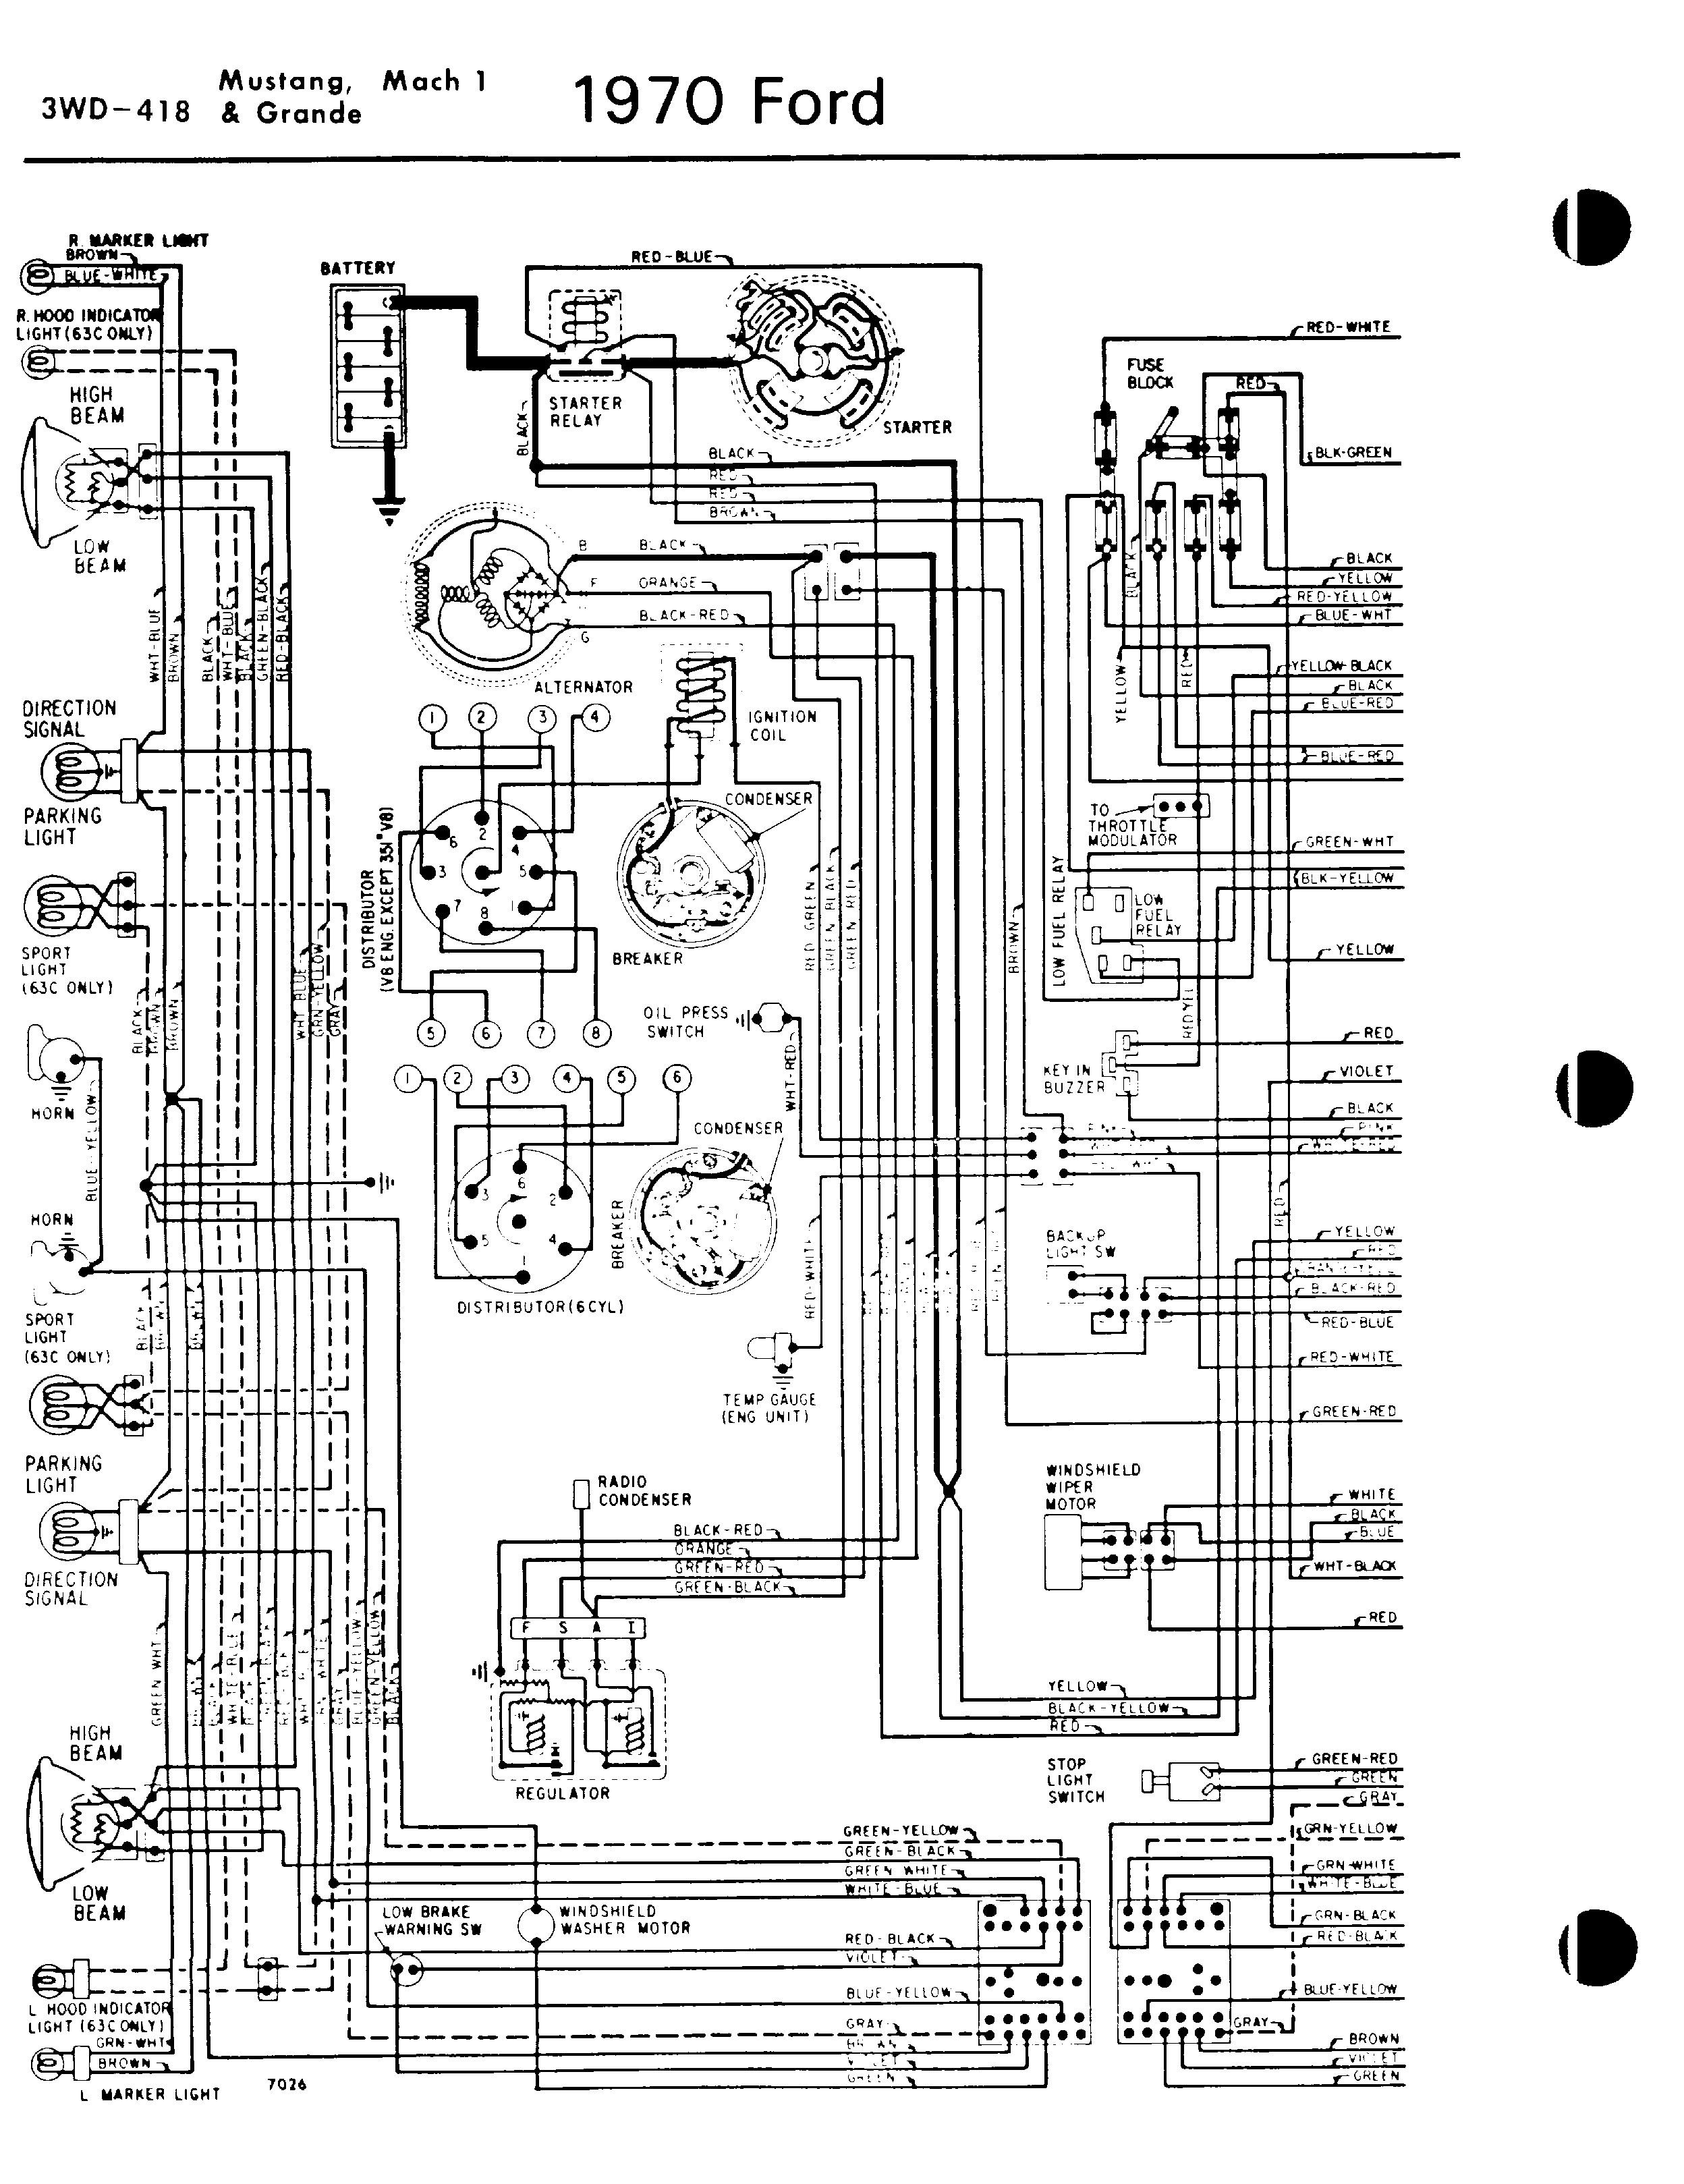 Raven 440 Wiring Diagram Free Download Cable Diagrams Together With John Deere 4600 Parts Including Stunning Gallery